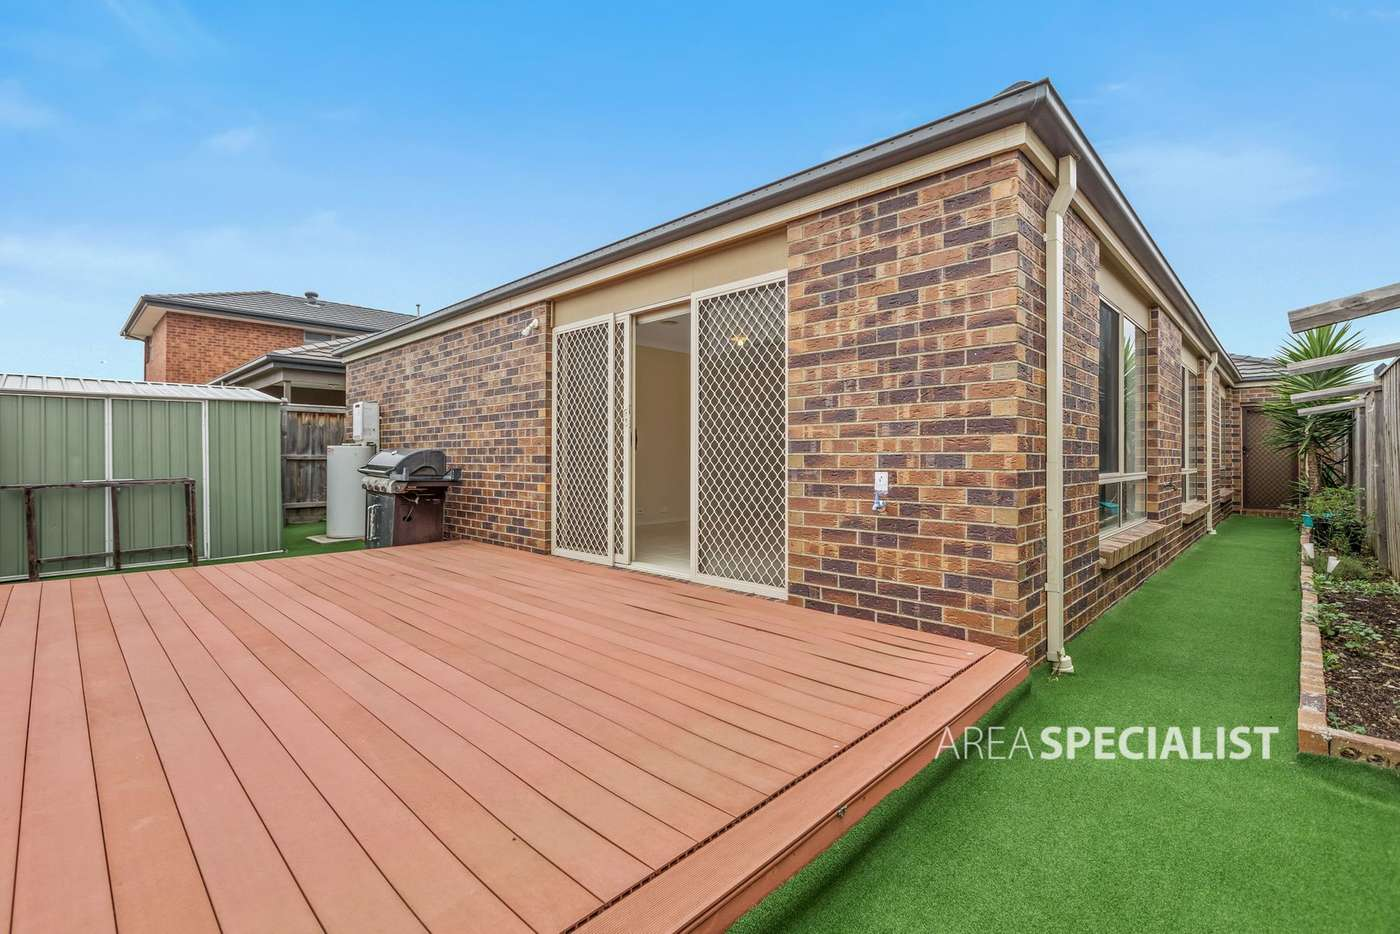 Seventh view of Homely house listing, 28 Dahlia Crescent, Keysborough VIC 3173